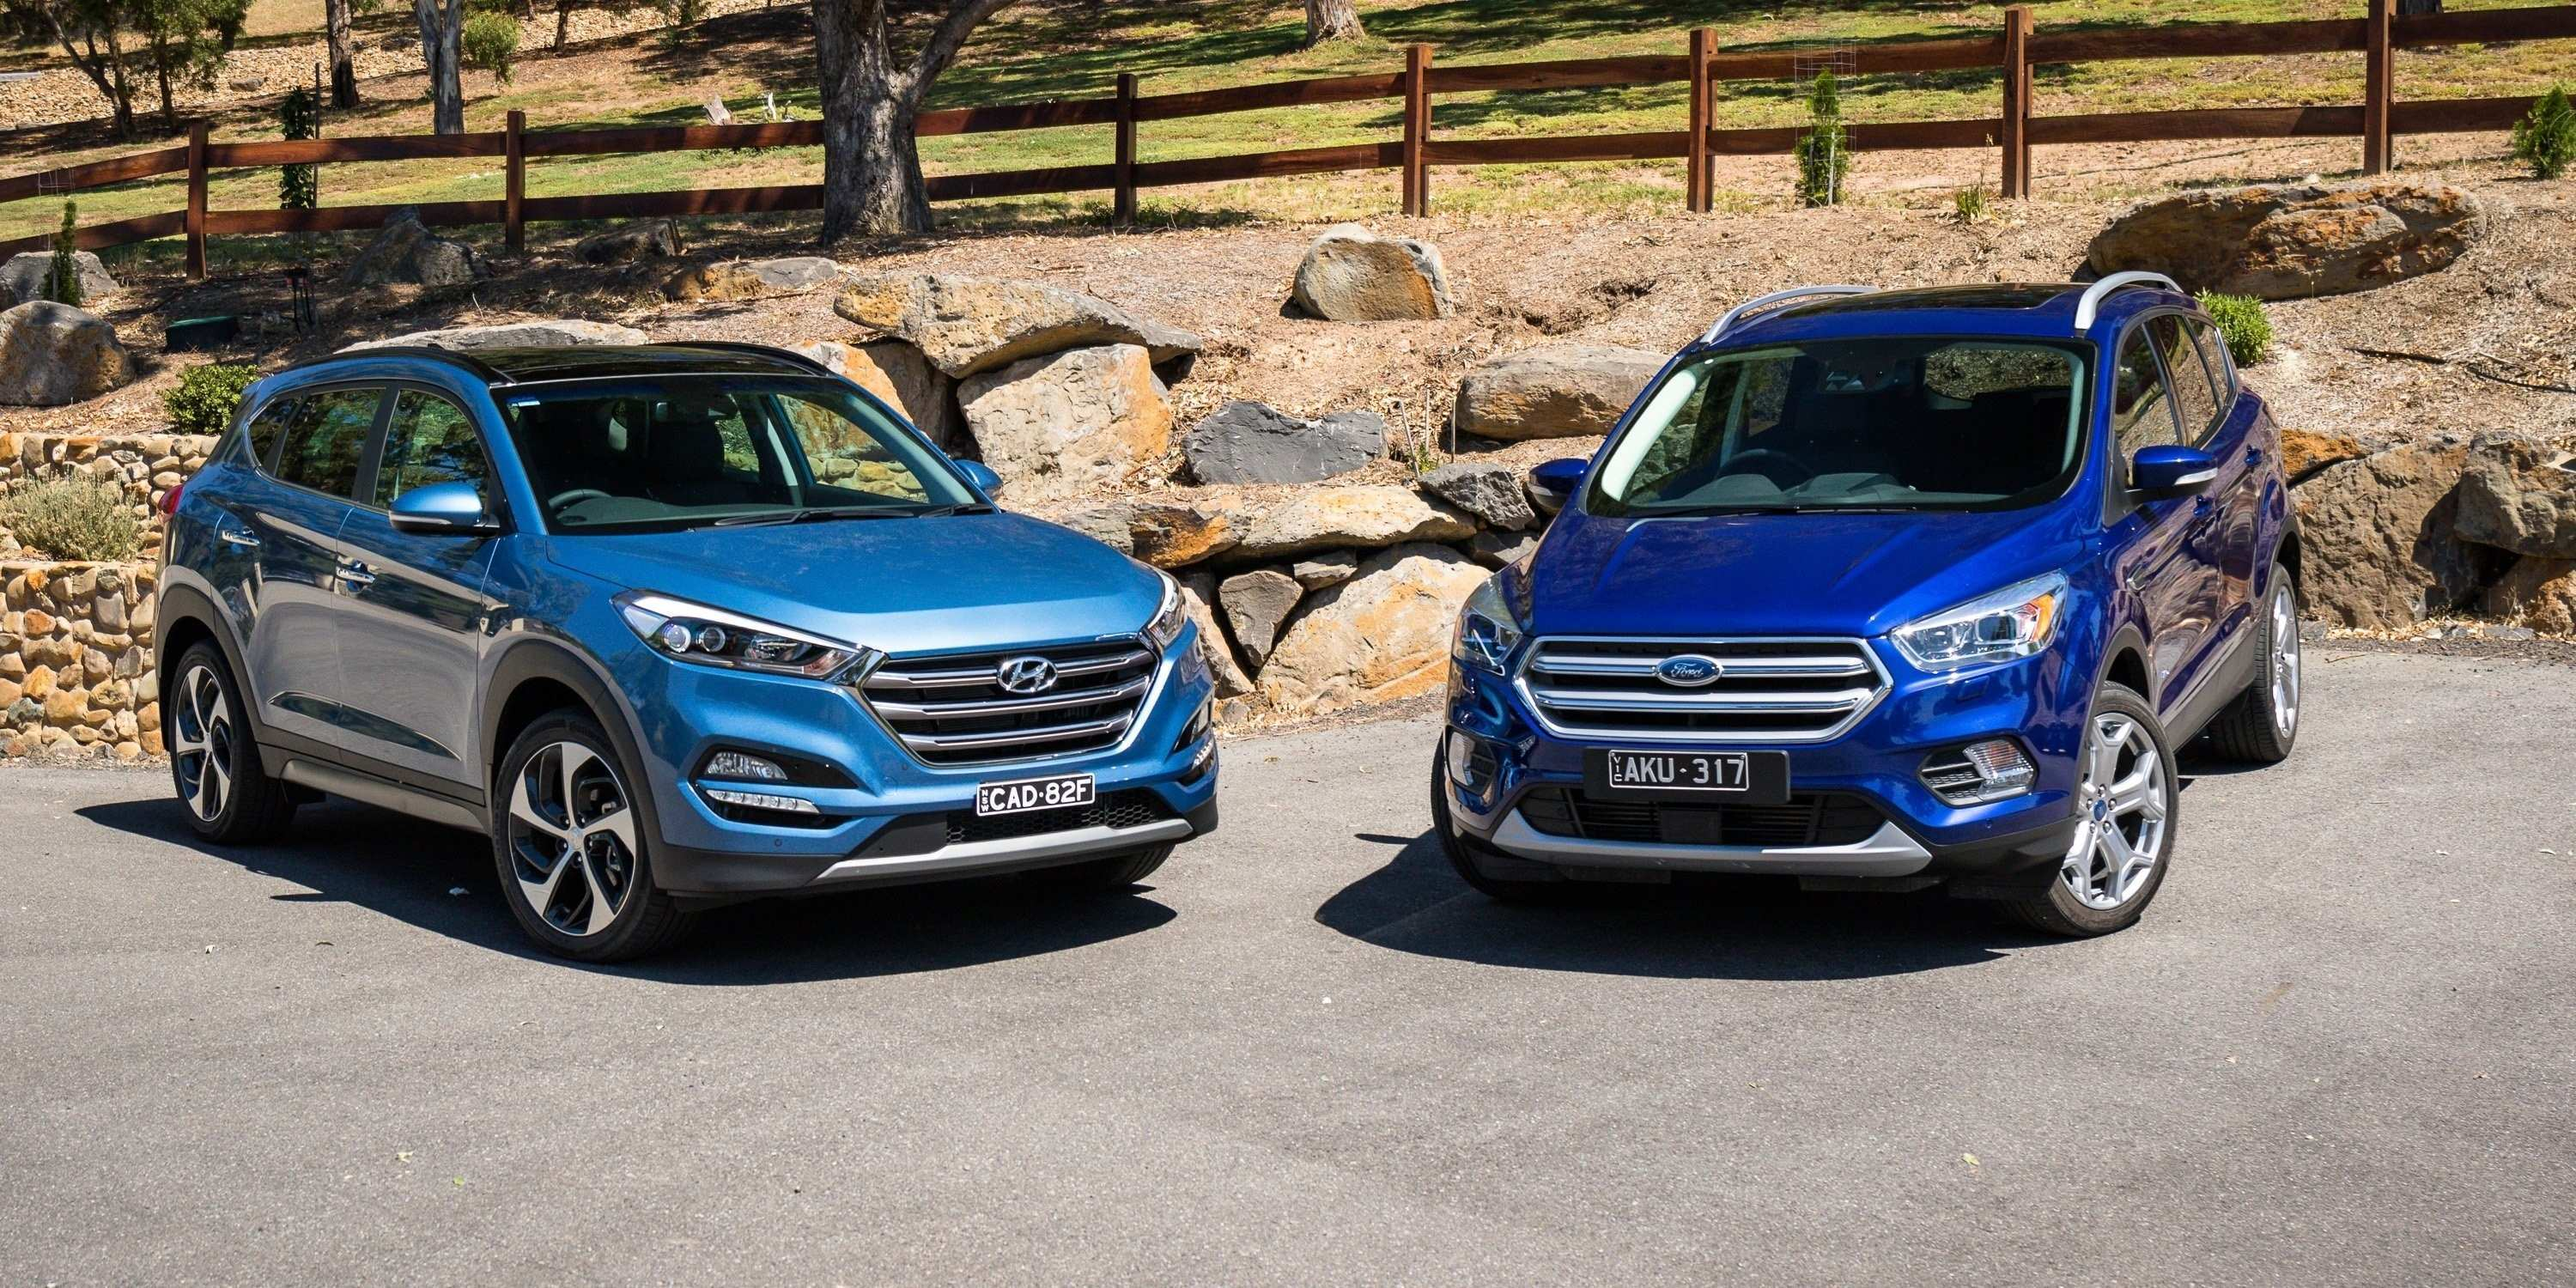 61 All New 2019 Hyundai Colors Specs and Review for 2019 Hyundai Colors